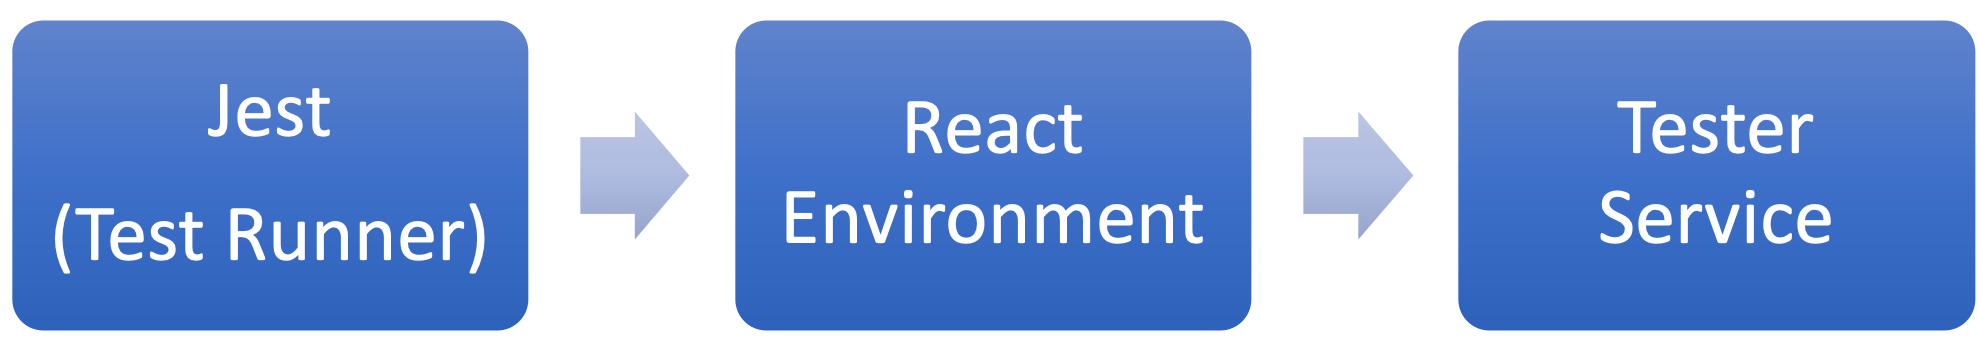 React env using Jest with the tester service